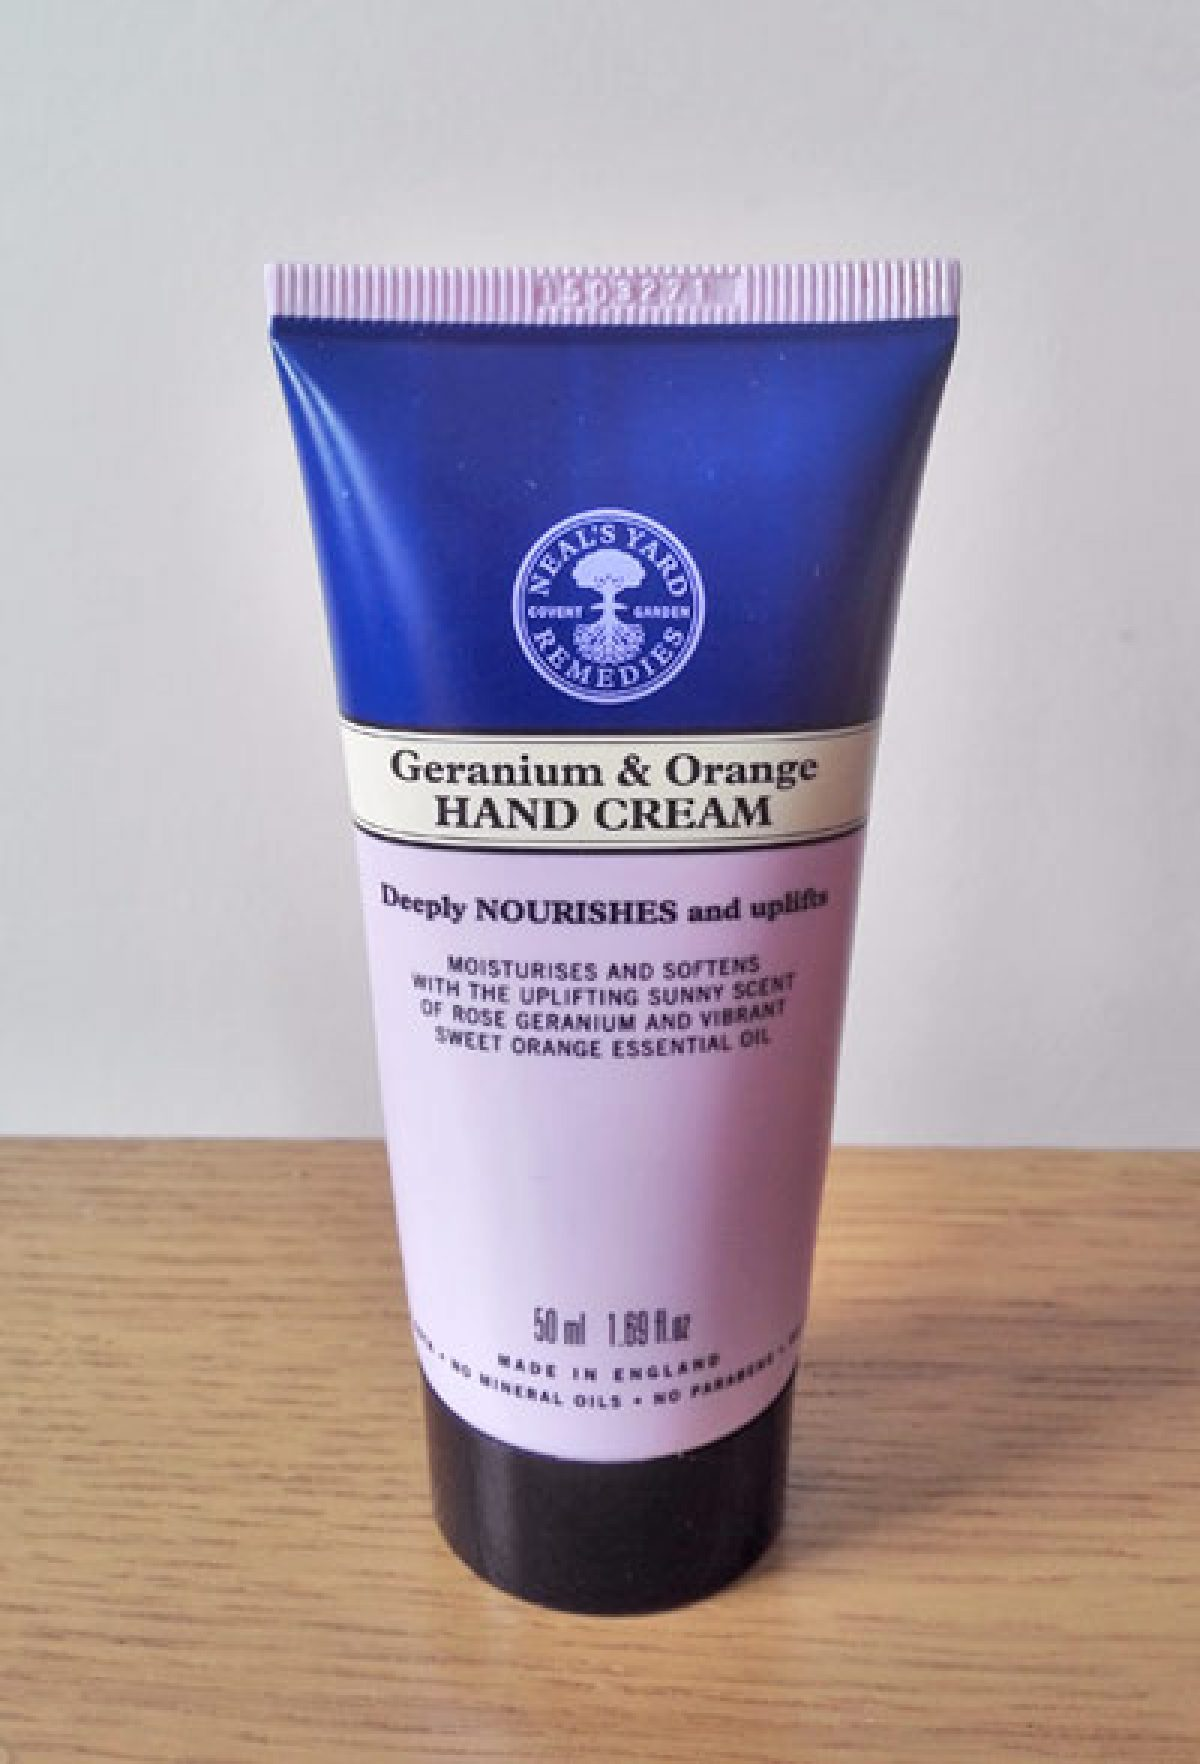 Geranium & Orange Hand Cream